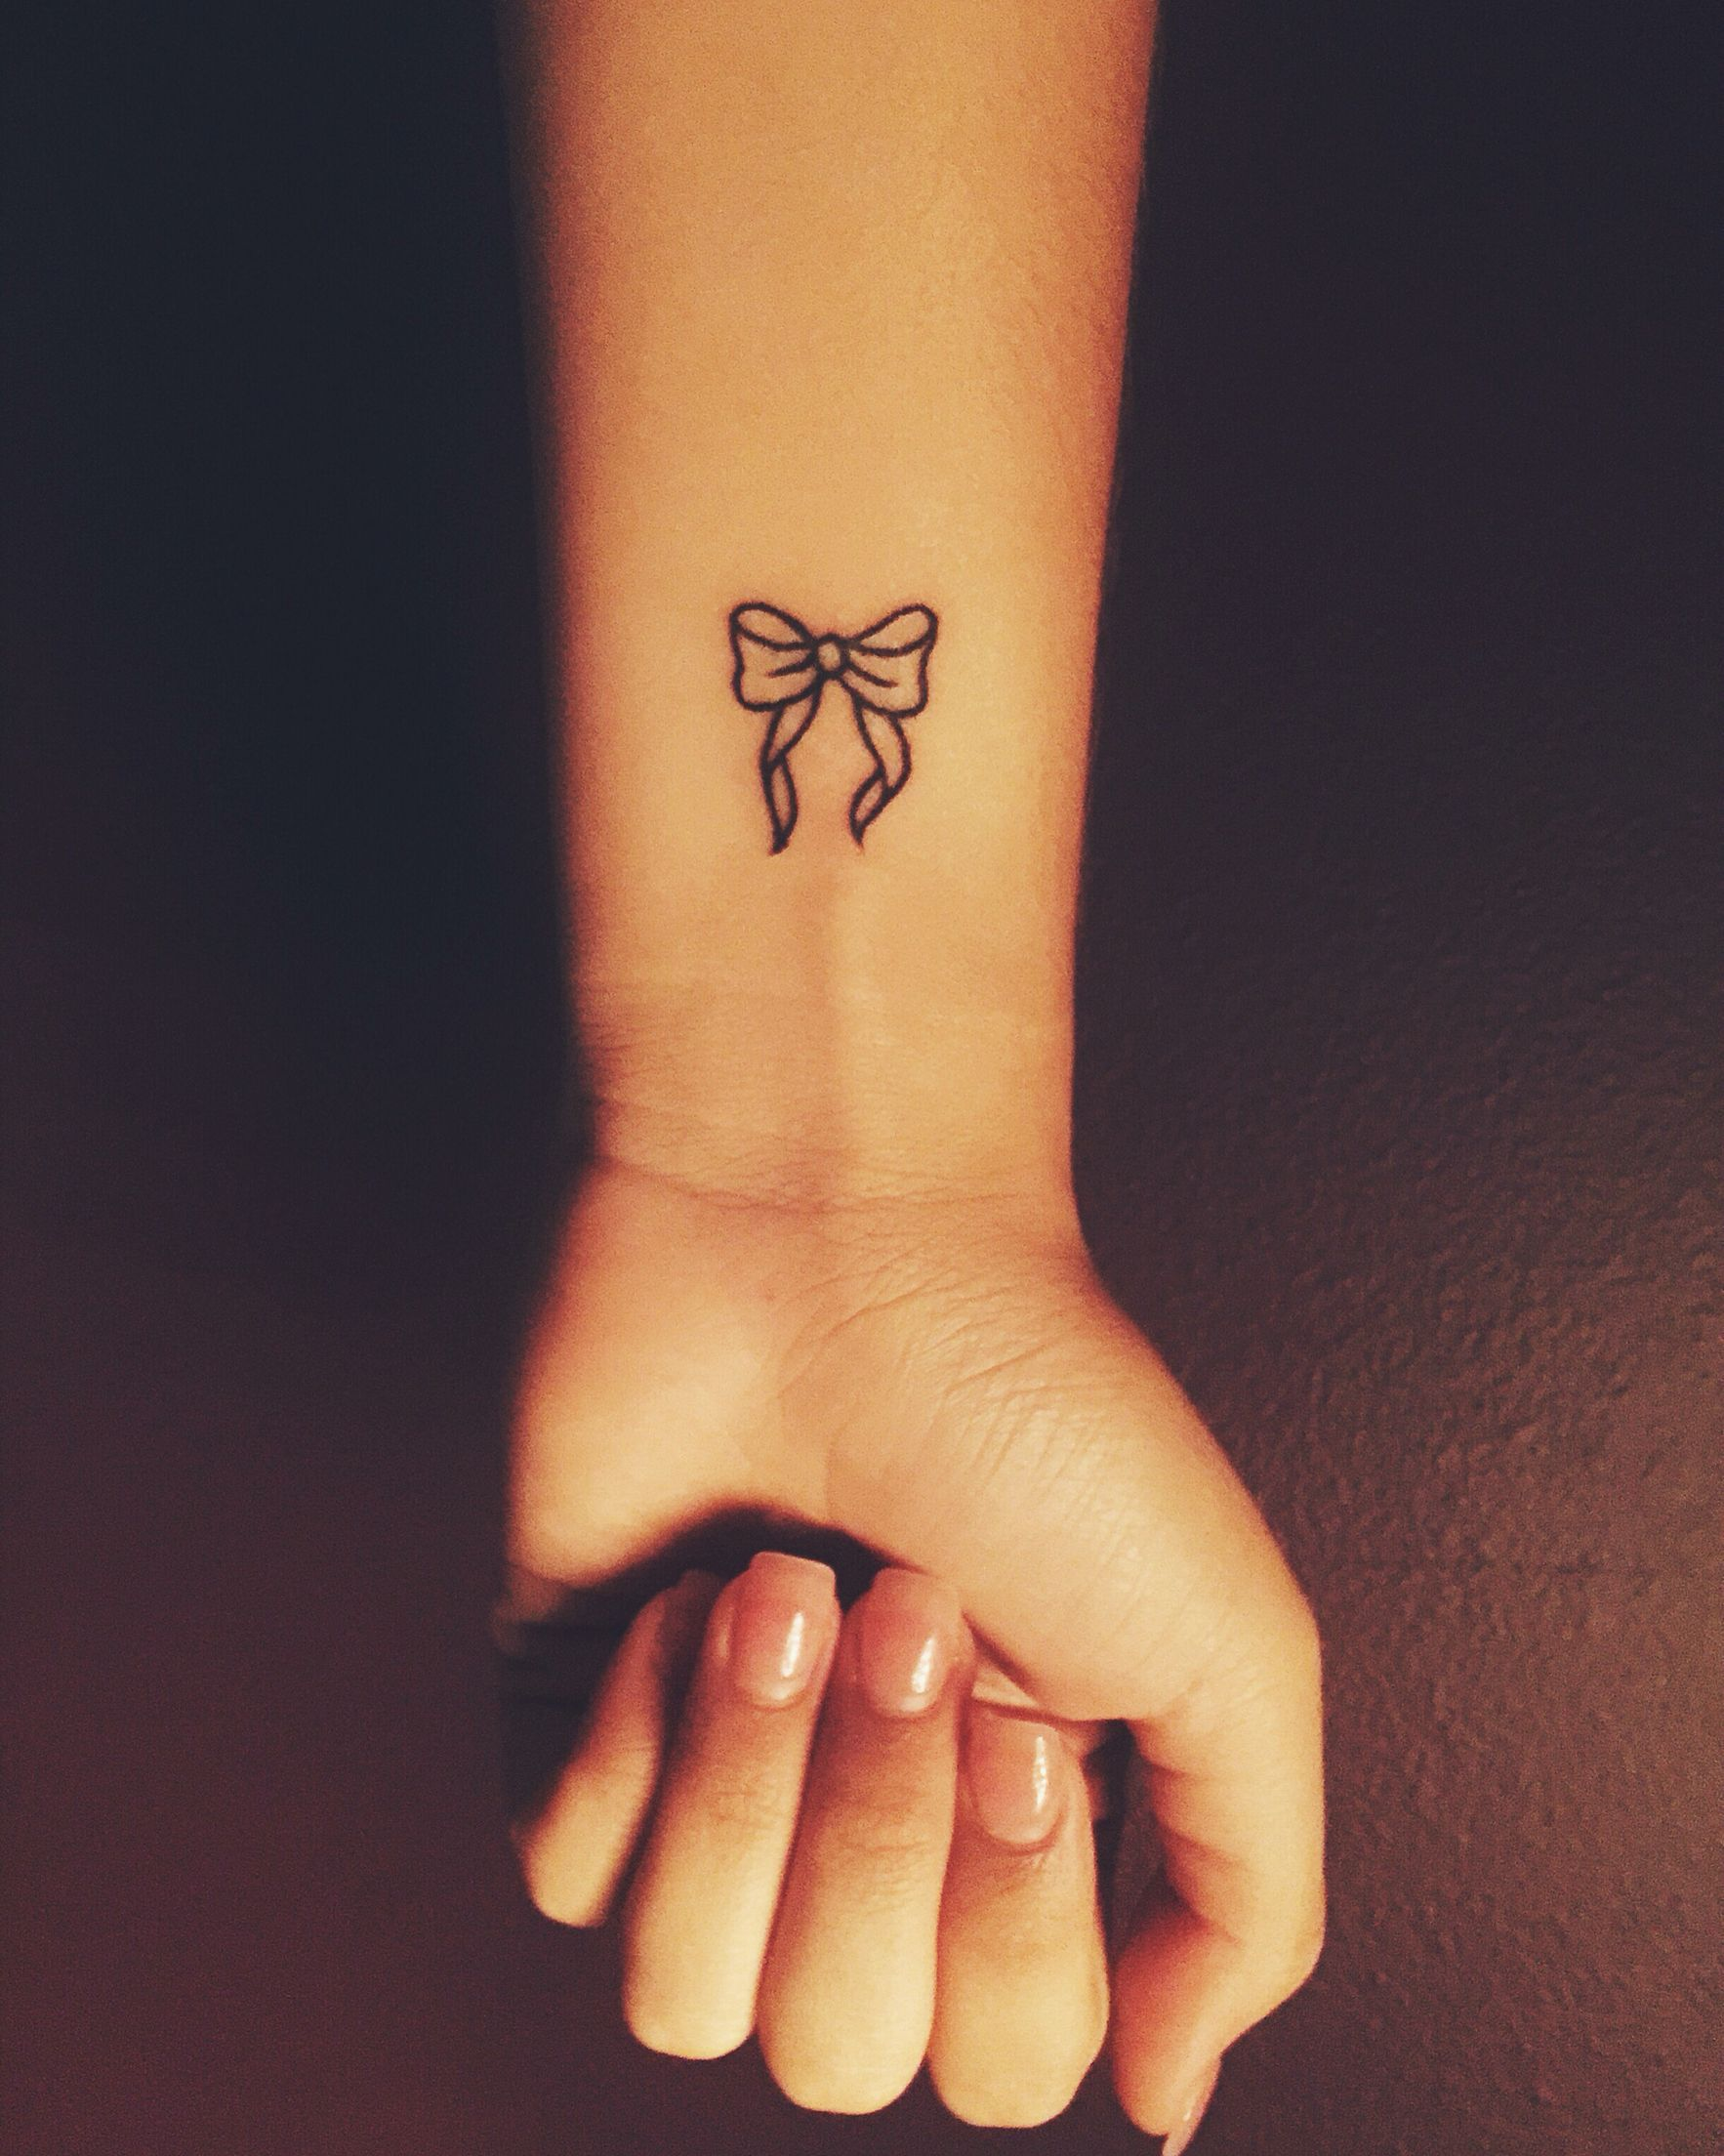 2017 01 small tattoo designs for women on foot - Small Bow Tattoo Cute Wrist Tattoo This But On My Foot